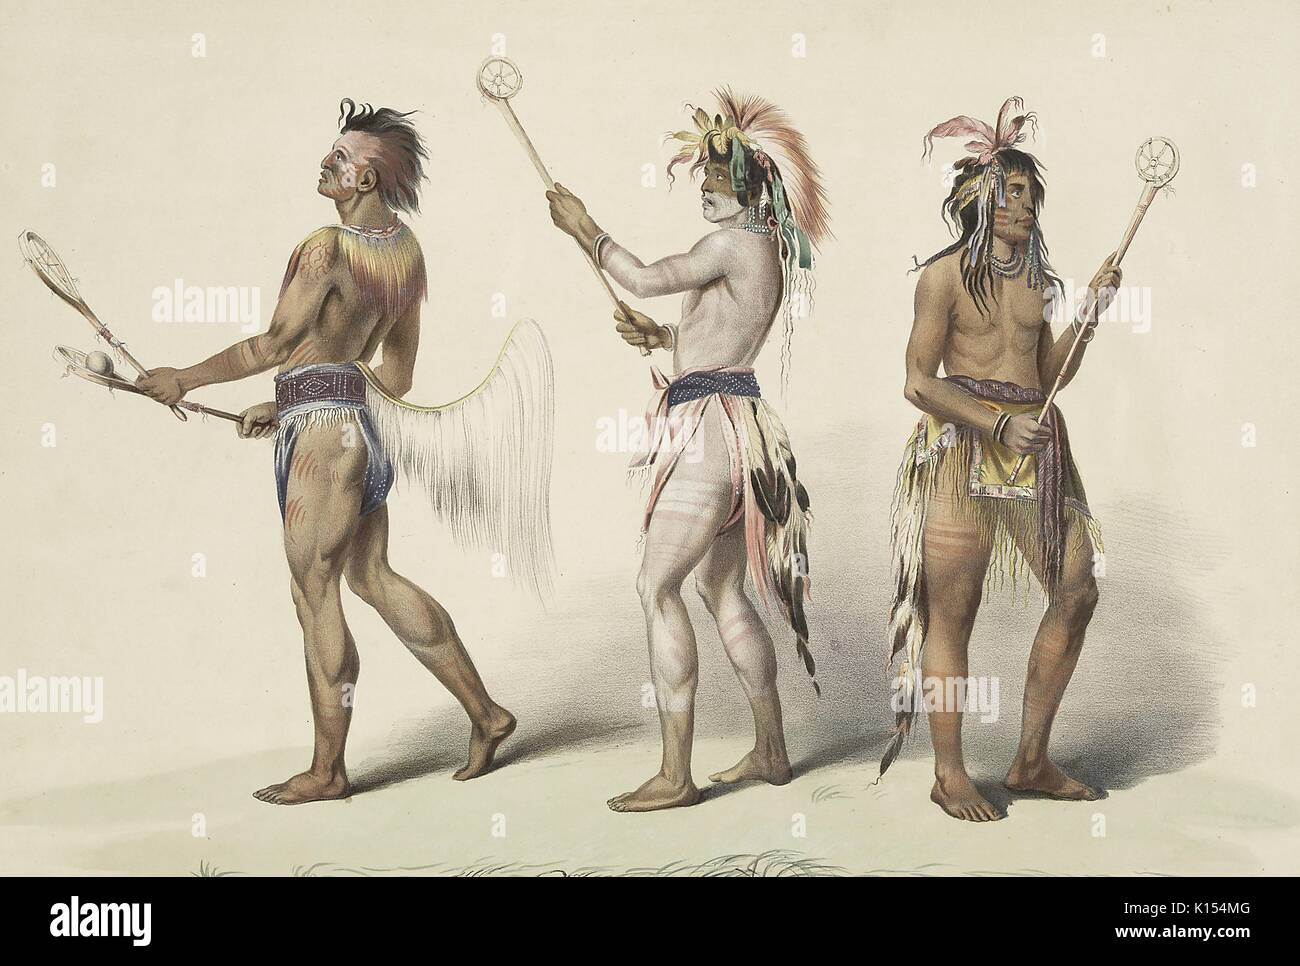 Native Americans holding primitive lacrosse sticks and preparing to